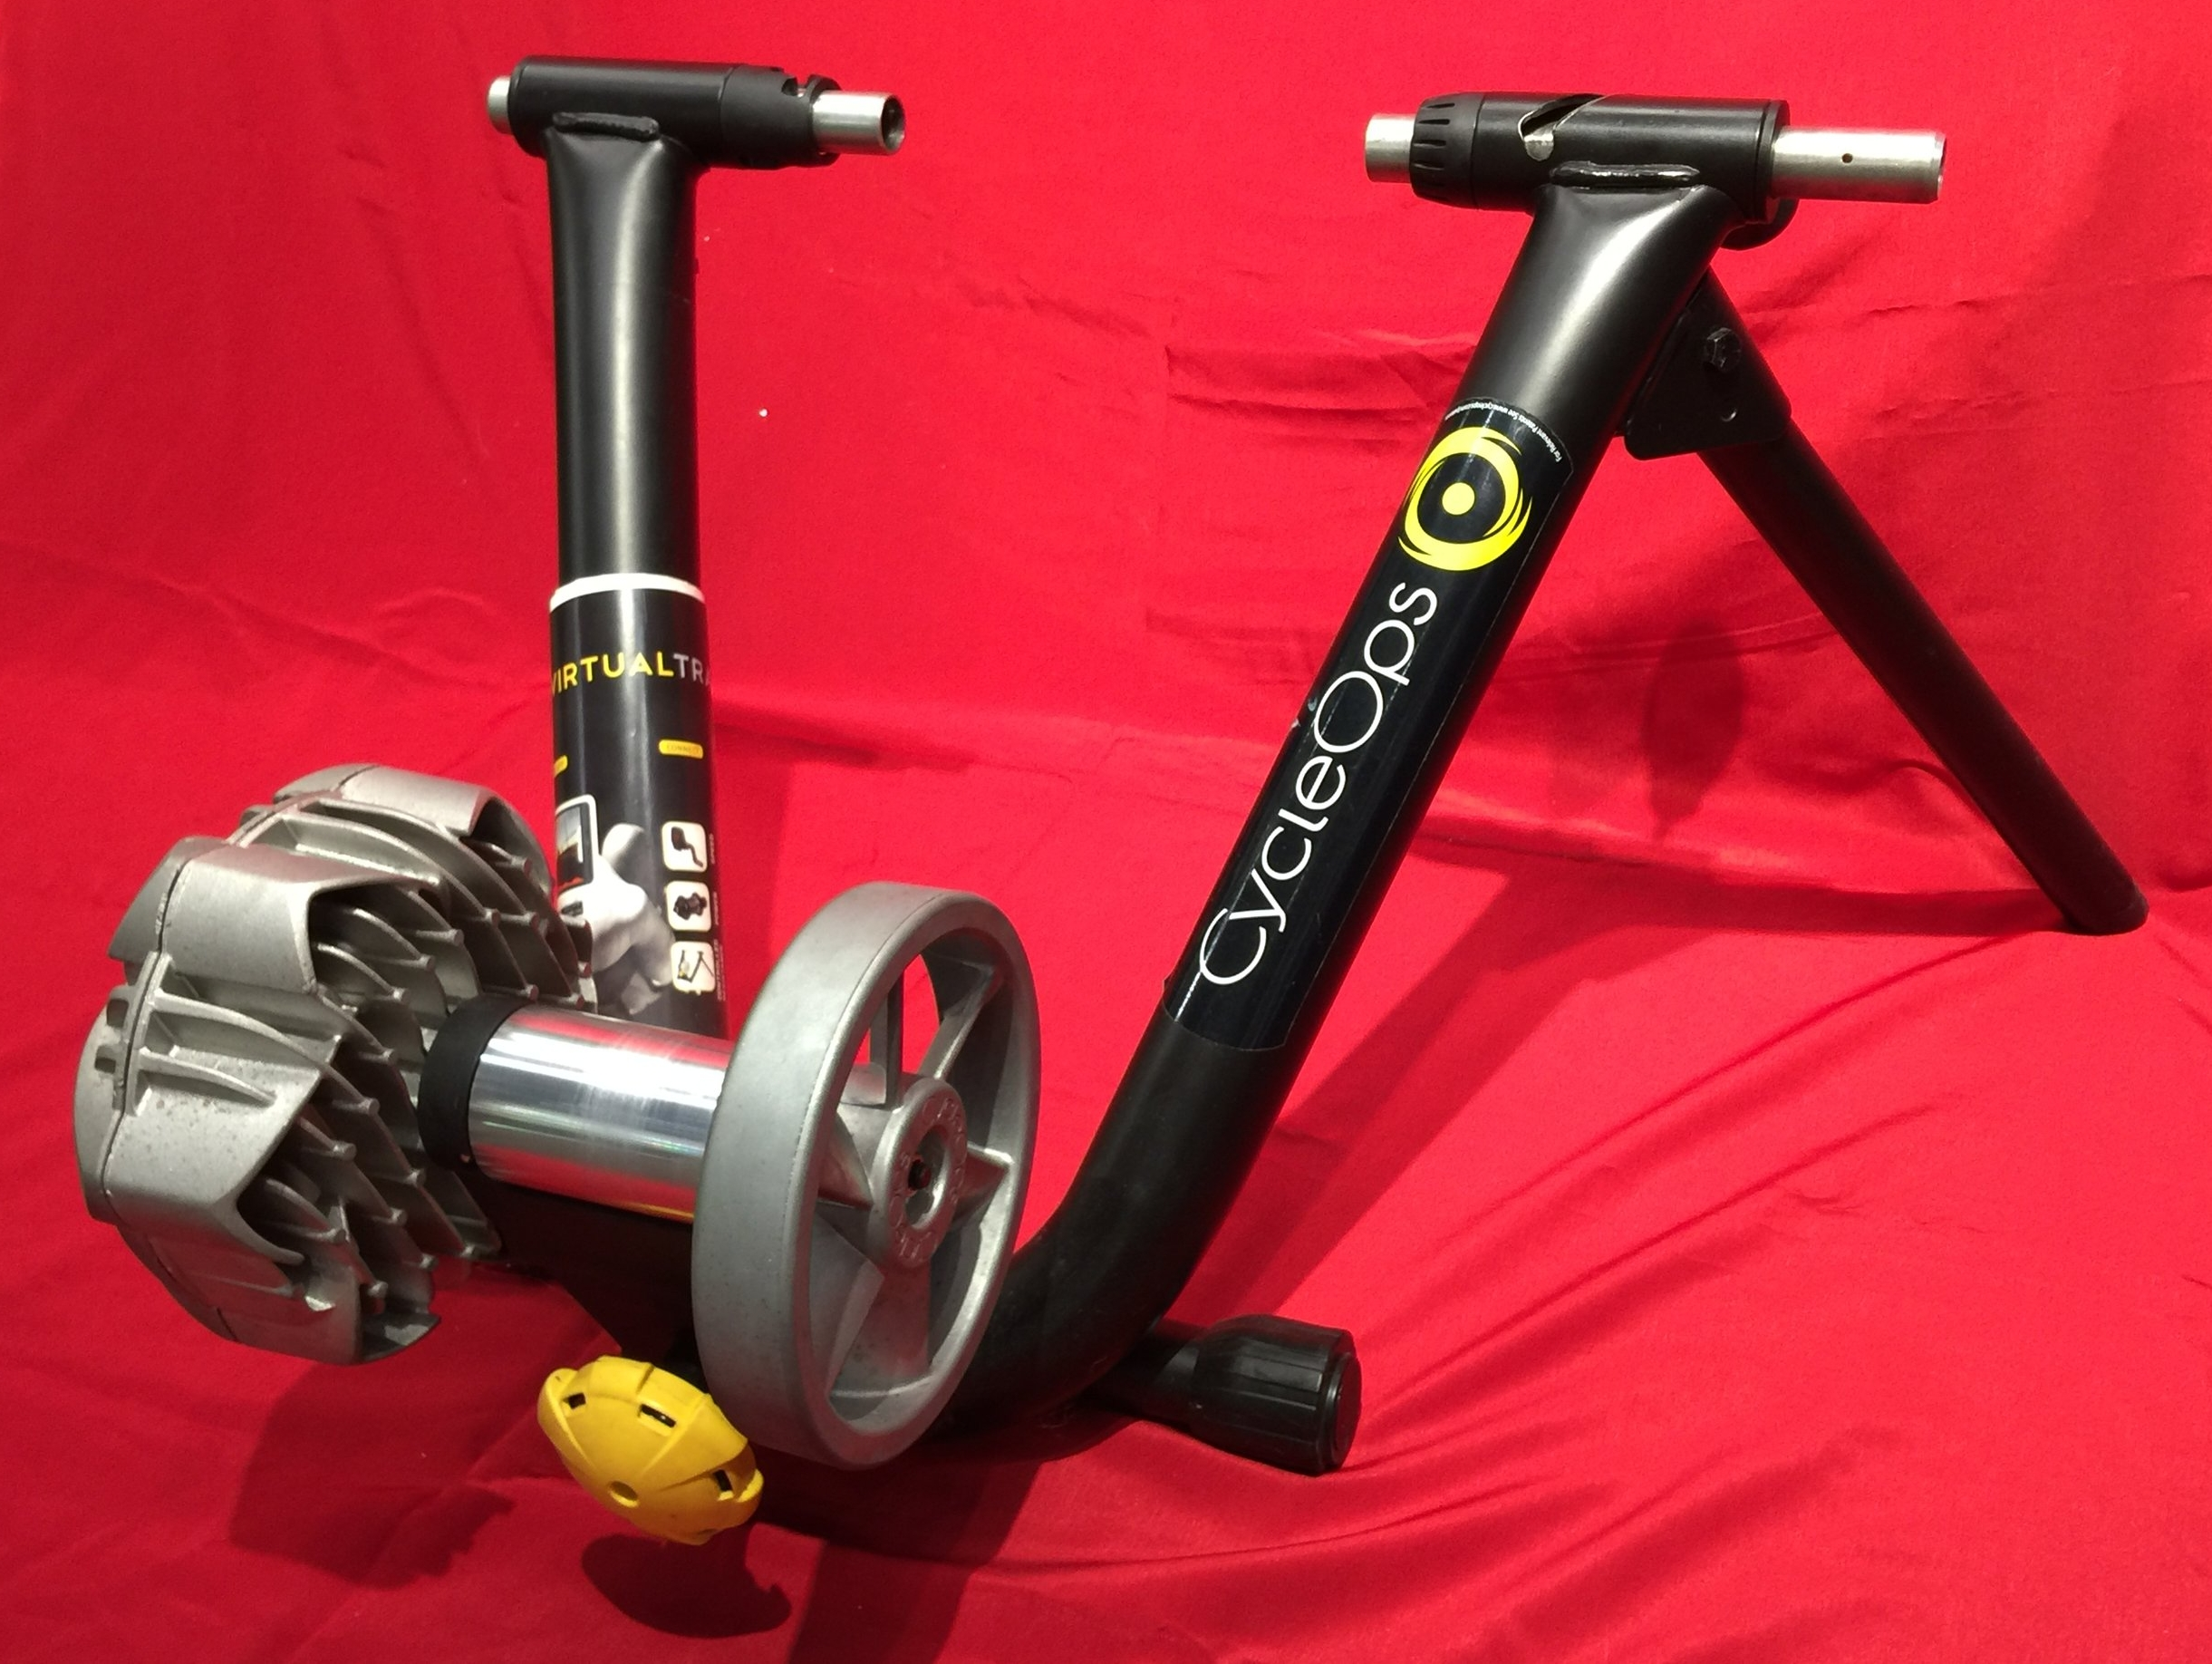 Cyclop Fluid 2  Trainer  - in our opinion, the best trainer on the market.